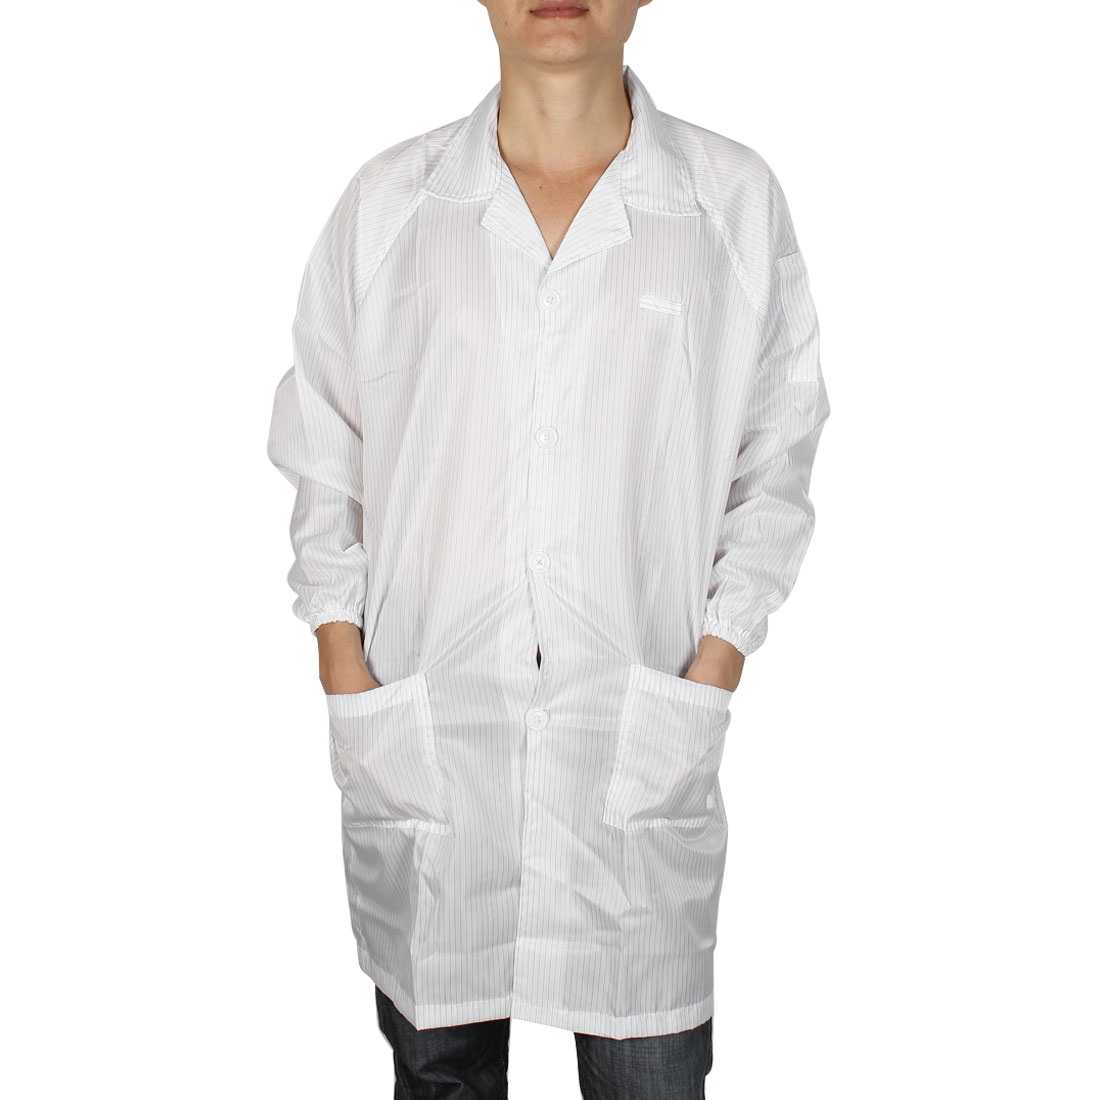 Unisex Long Sleeve Stripes Pattern Clean Room Anti Static Overalls Coat White X Large